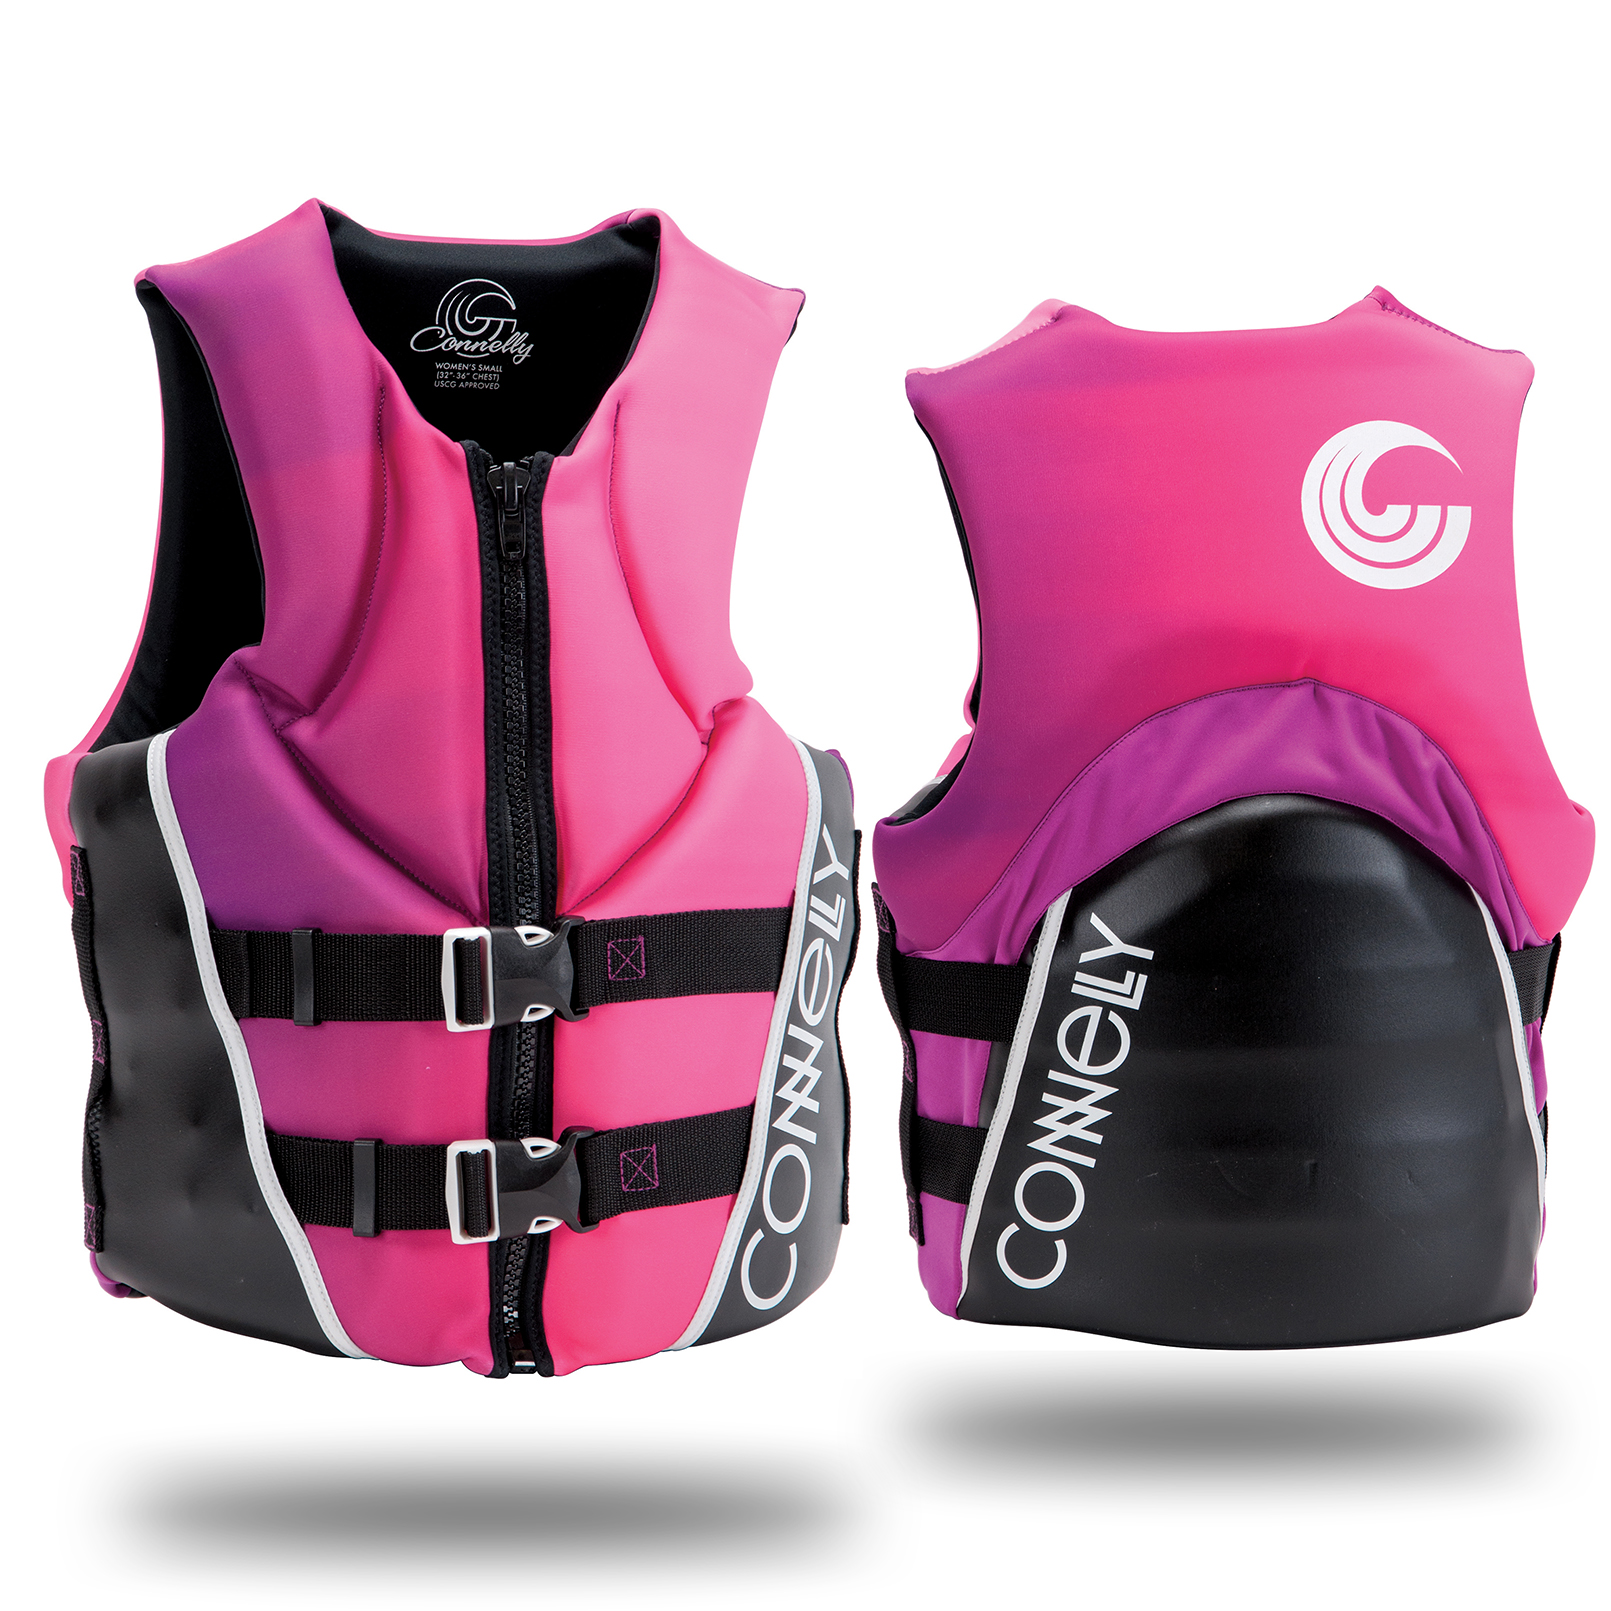 WOMEN'S ASPECT NEO VEST CONNELLY 2018